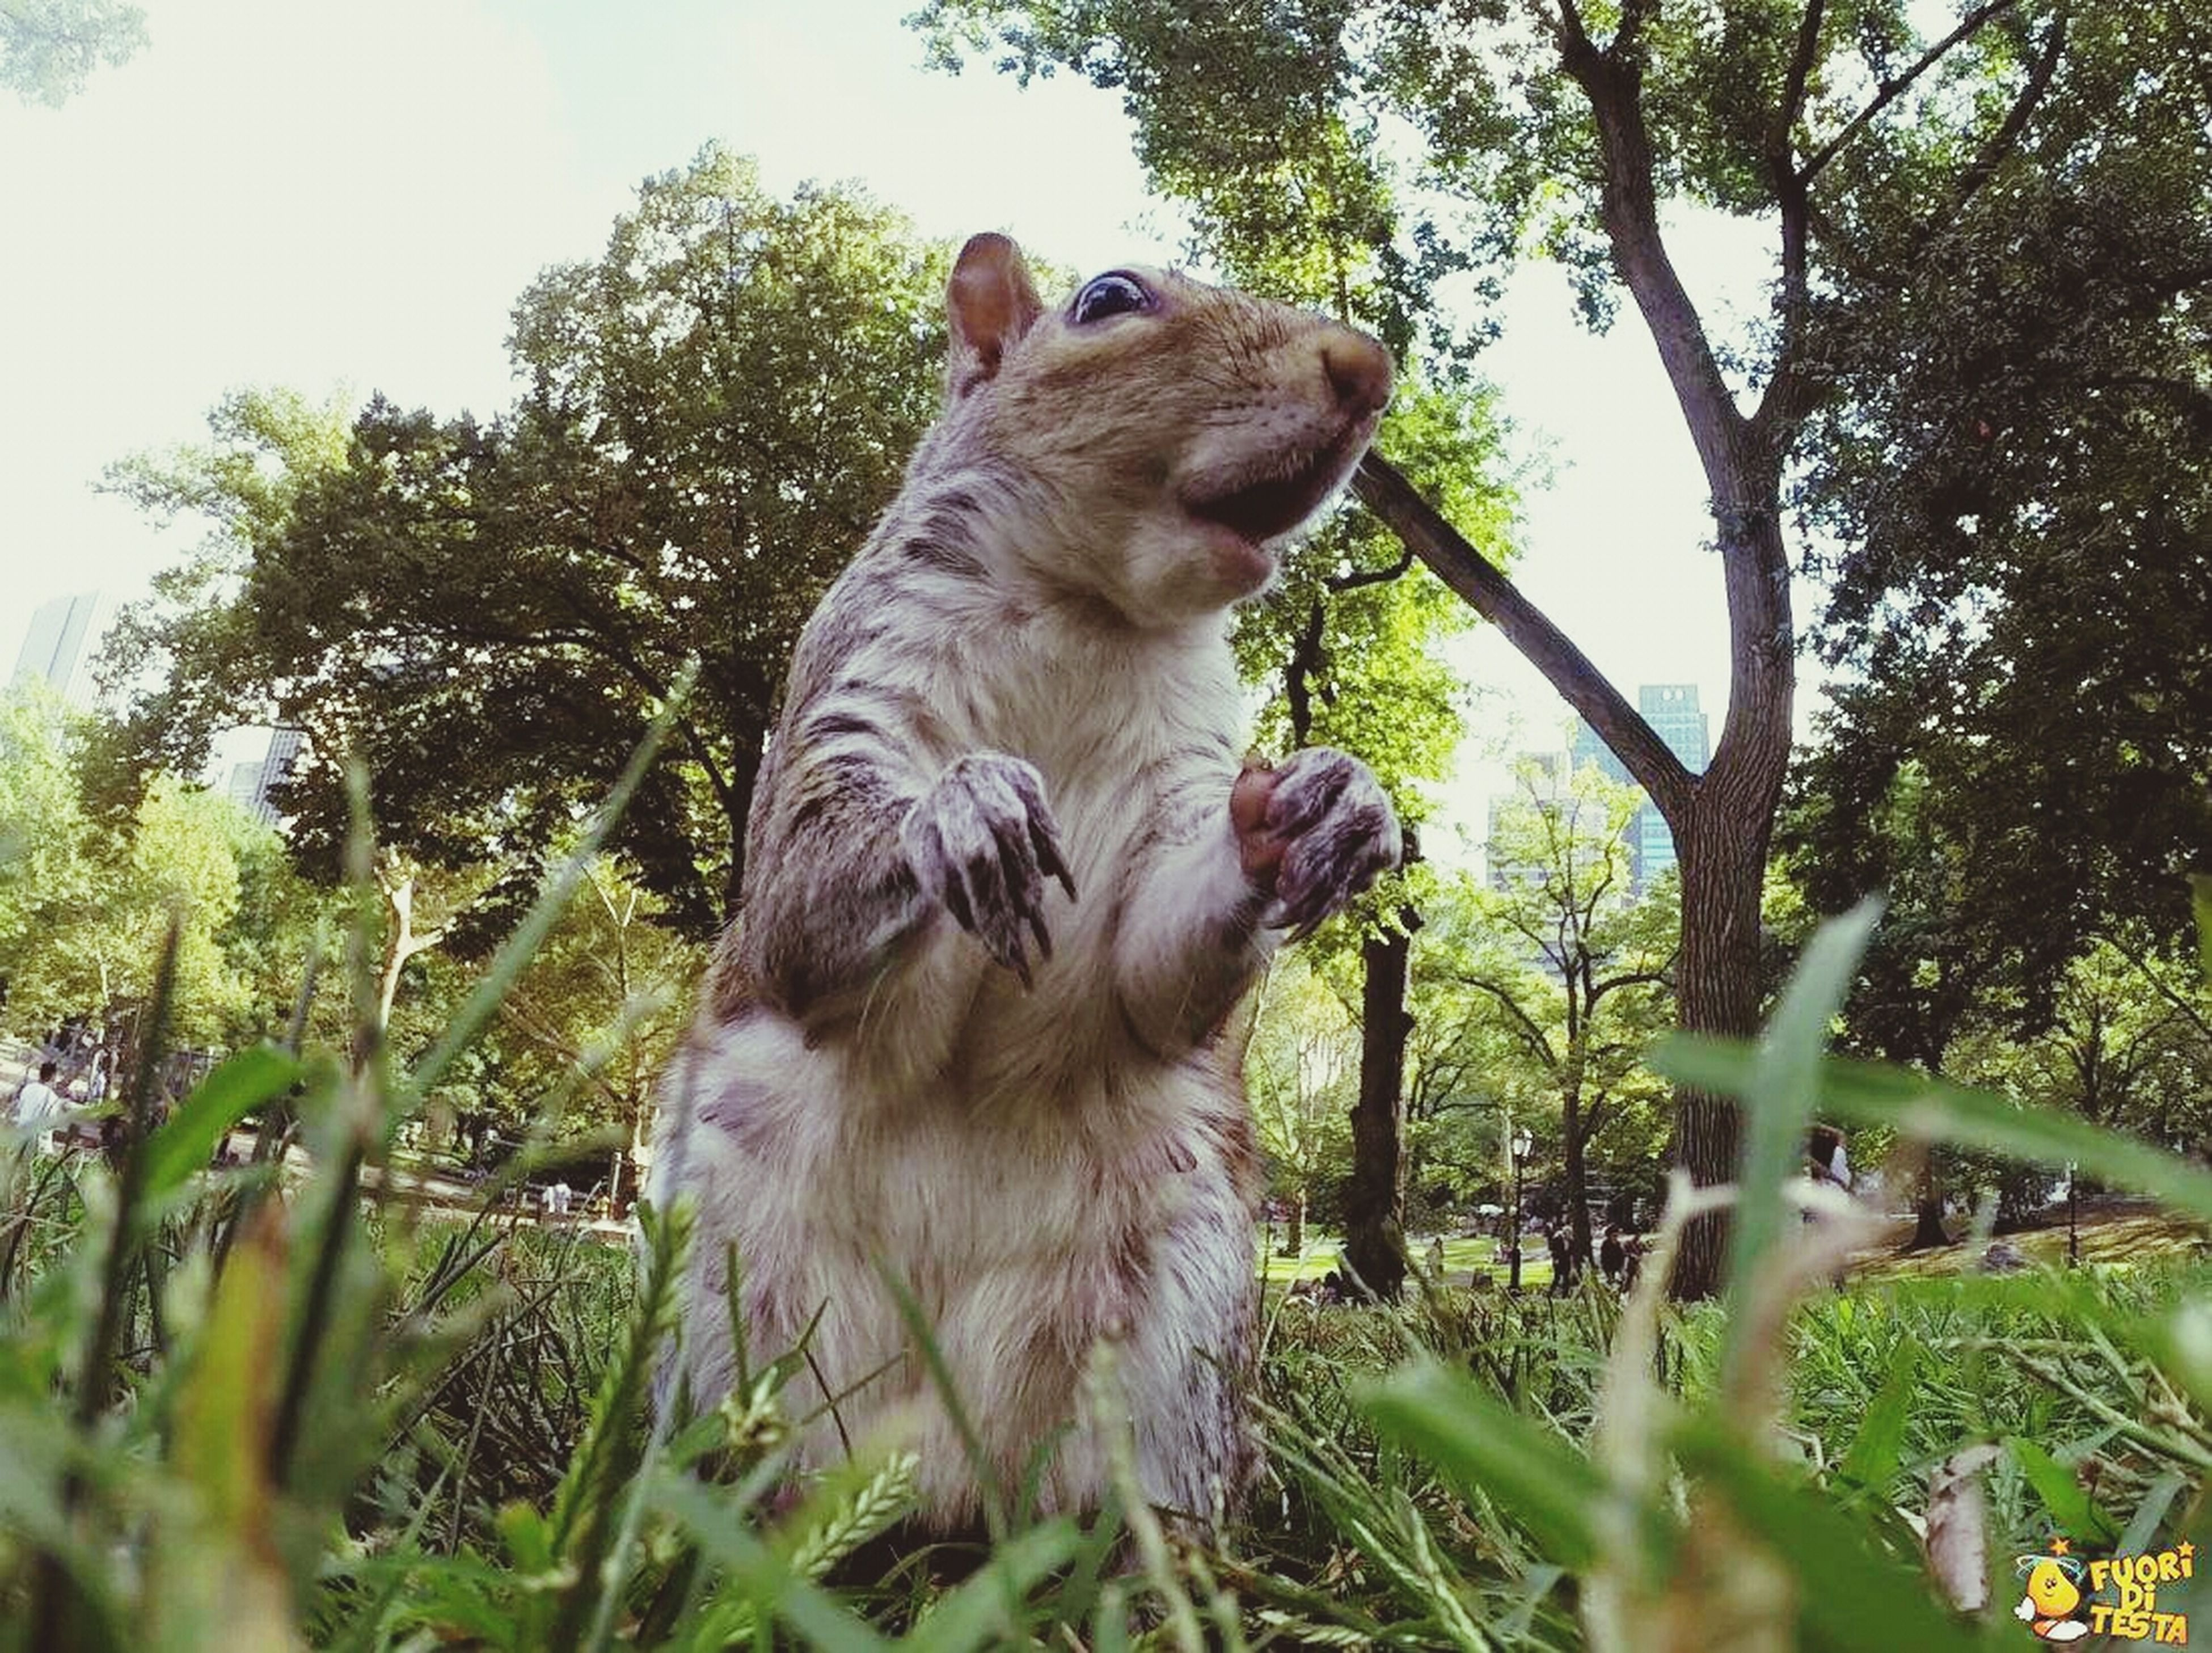 animal themes, mammal, one animal, tree, sitting, monkey, low angle view, dog, pets, domestic animals, wildlife, branch, animals in the wild, sky, looking away, outdoors, nature, no people, day, growth